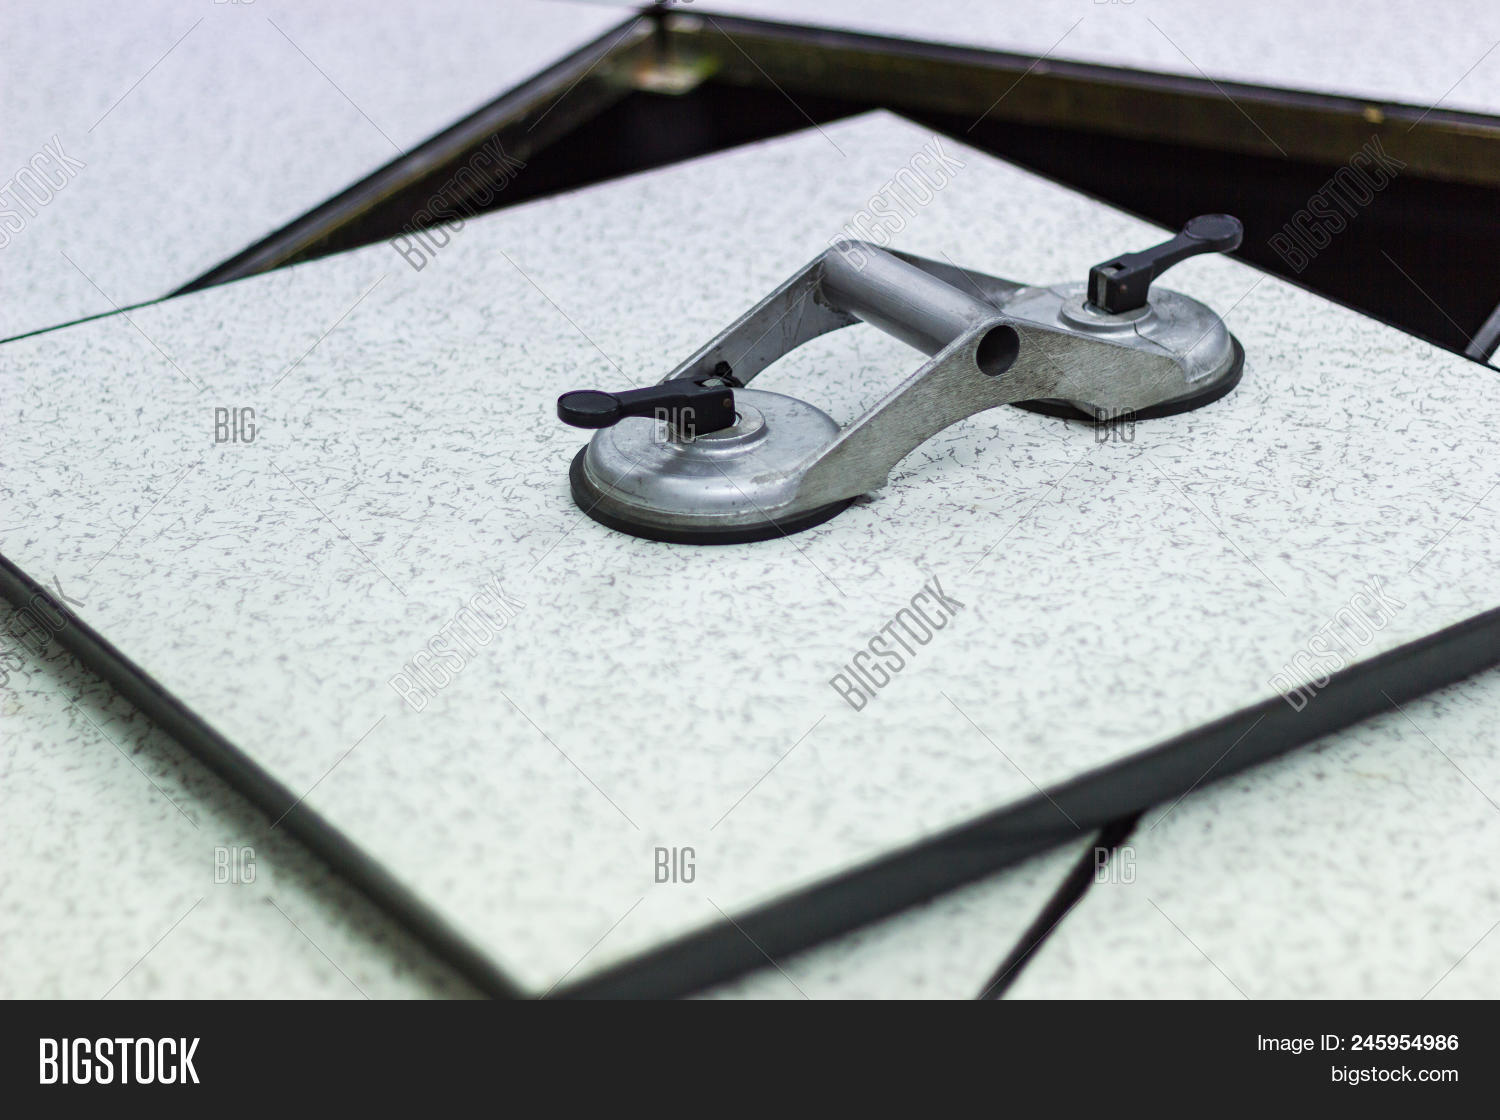 Suction Lifter Tool Image Photo Free Trial Bigstock